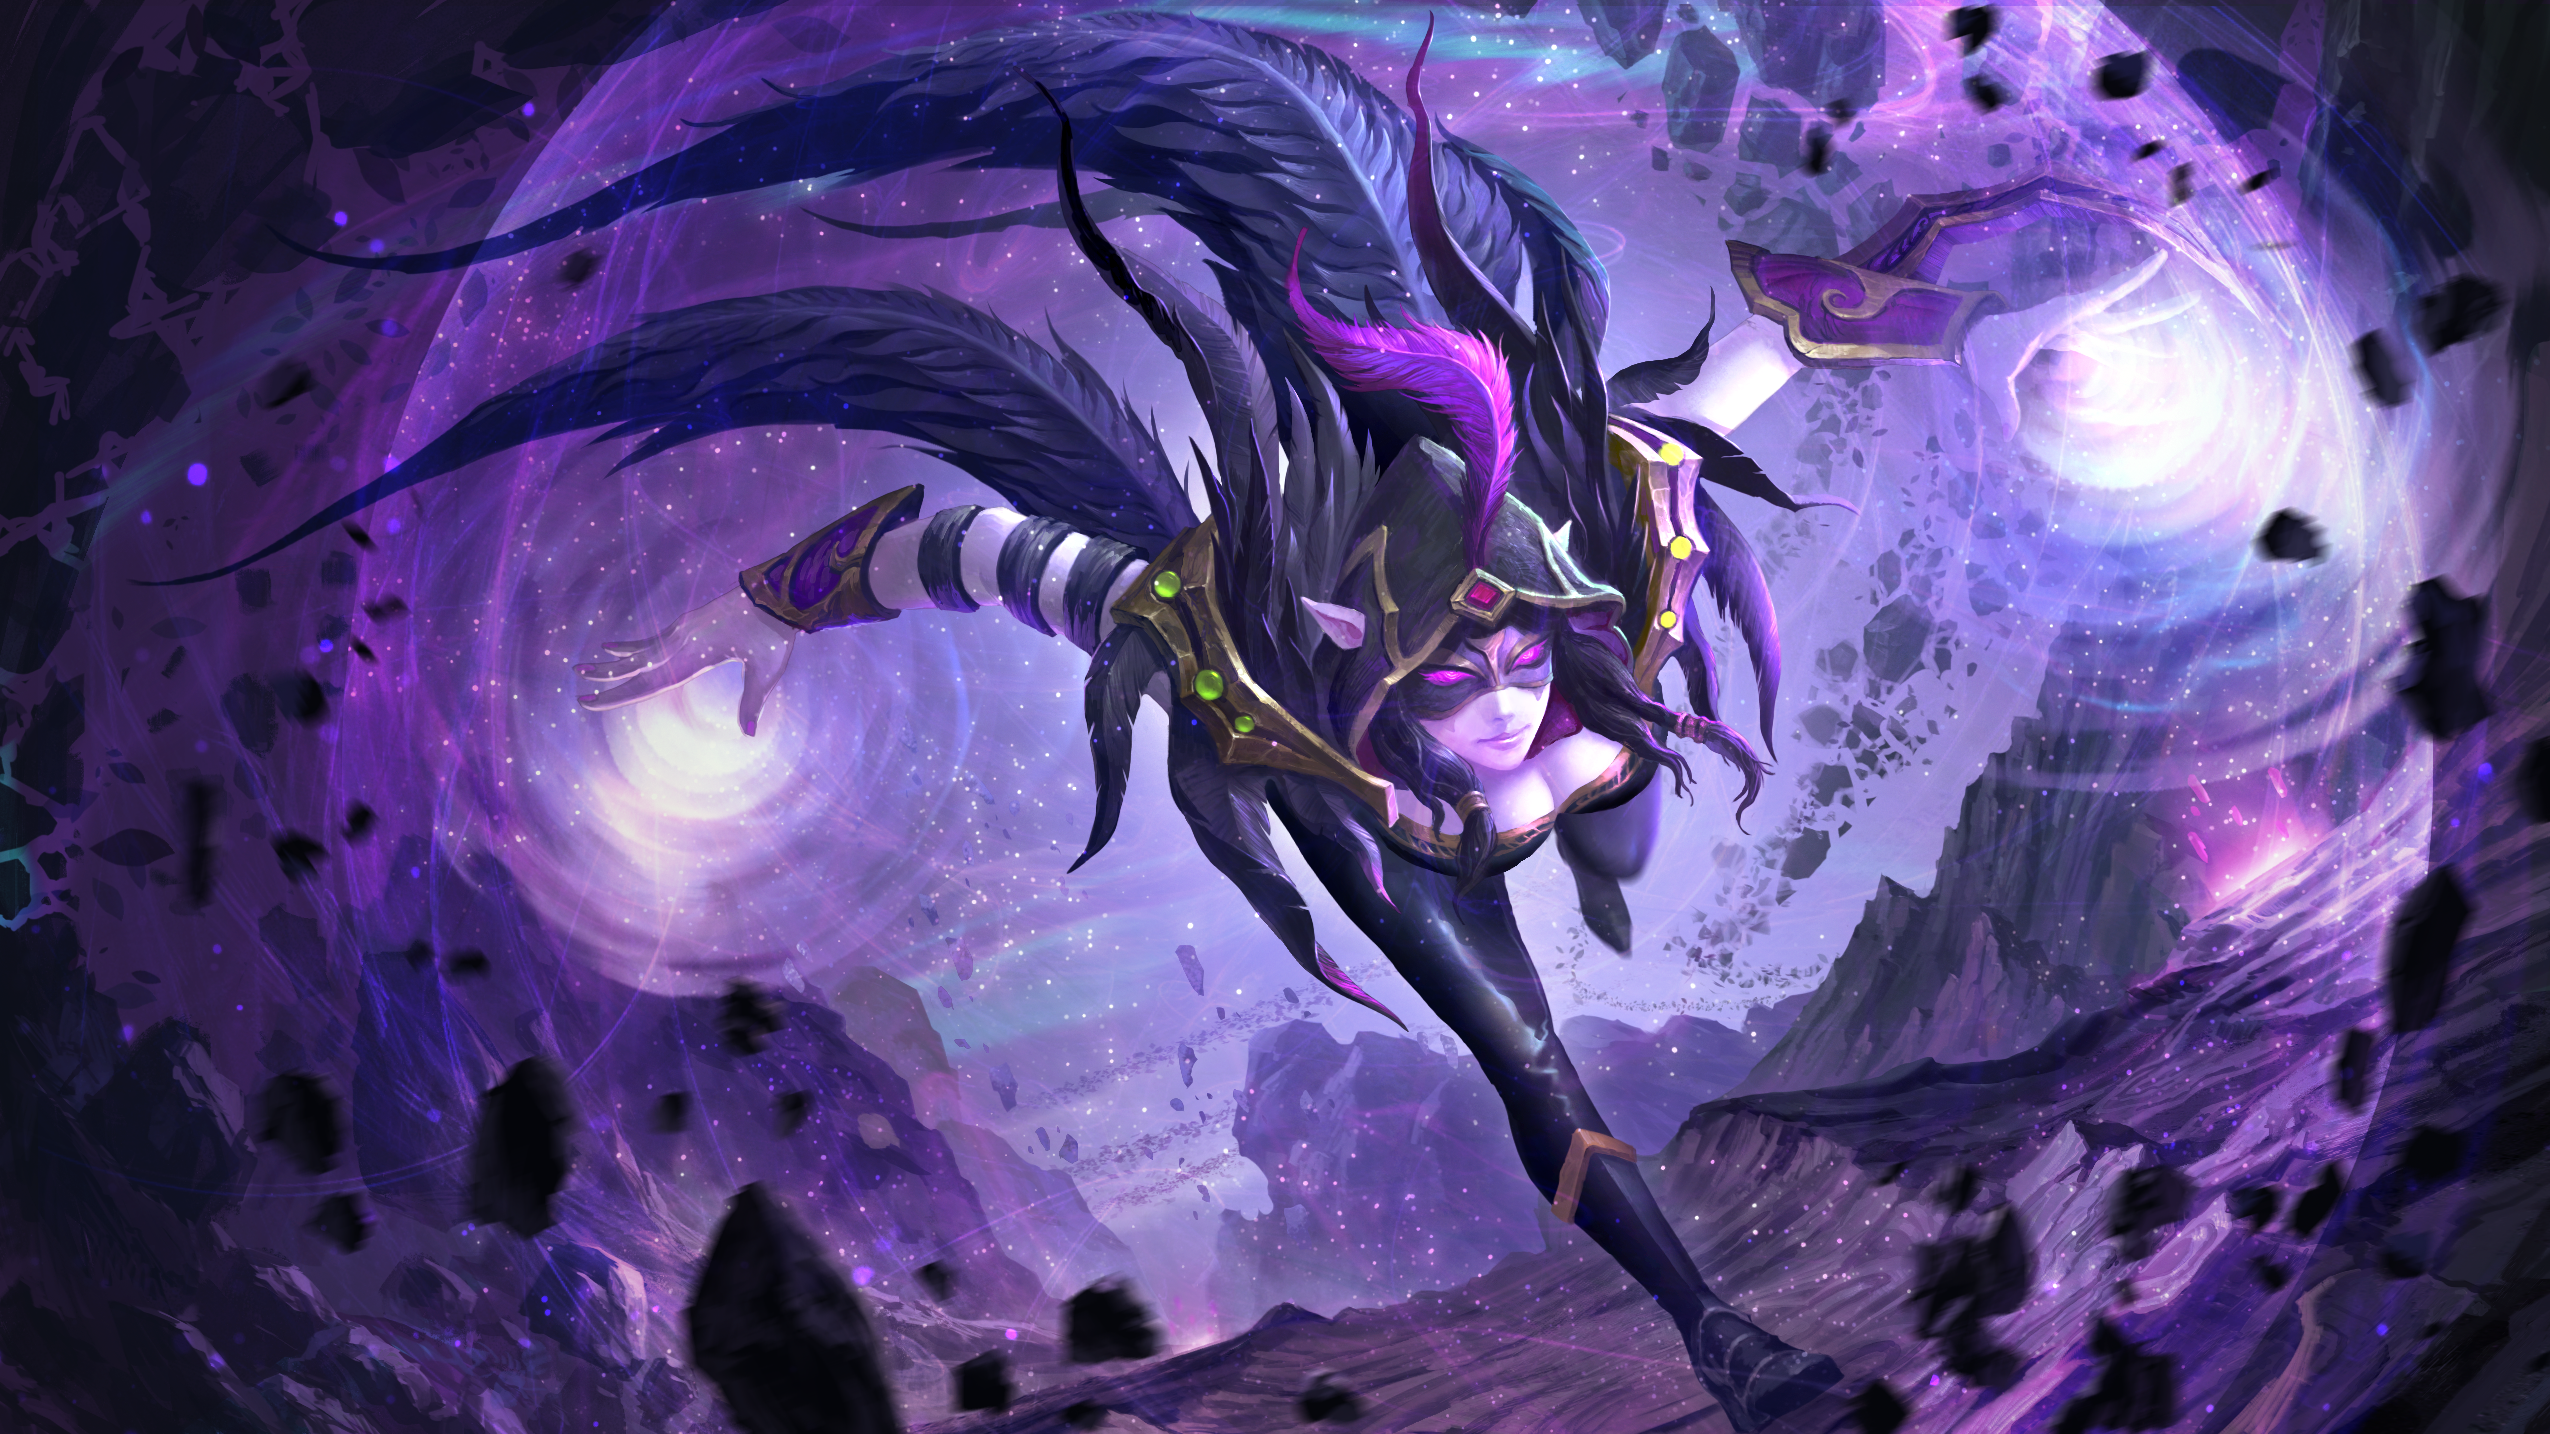 Steam Workshop Templar Assassin Concealed Raven Mlg Dota 2 Wallpaper Defense Of The Ancients Dota 2